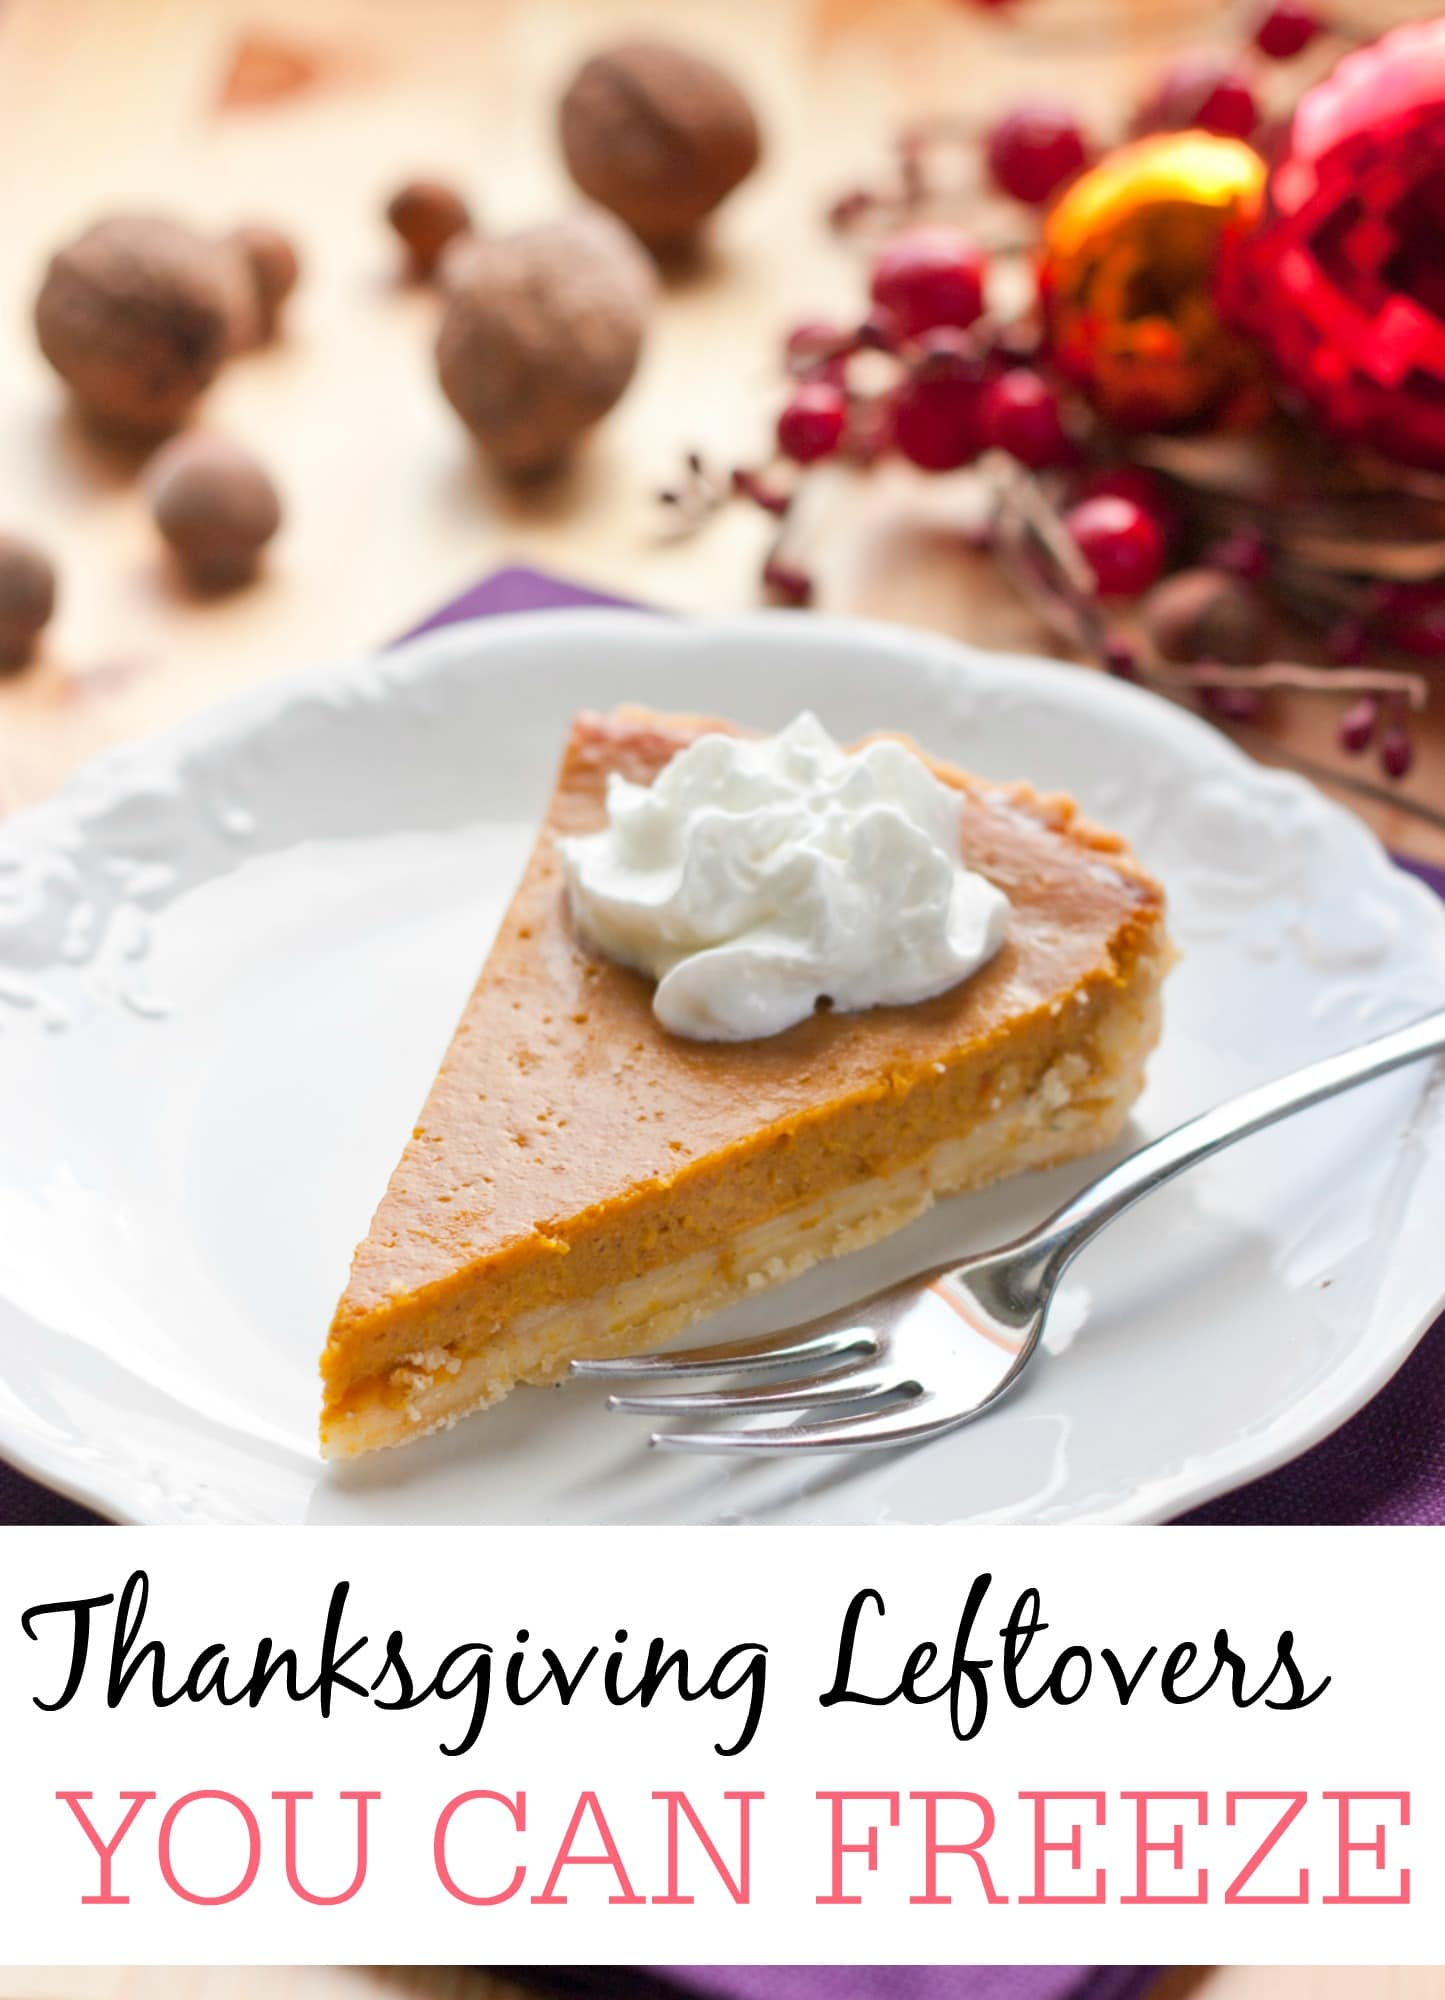 Awesome Tips For Freezing Thanksgiving Leftovers